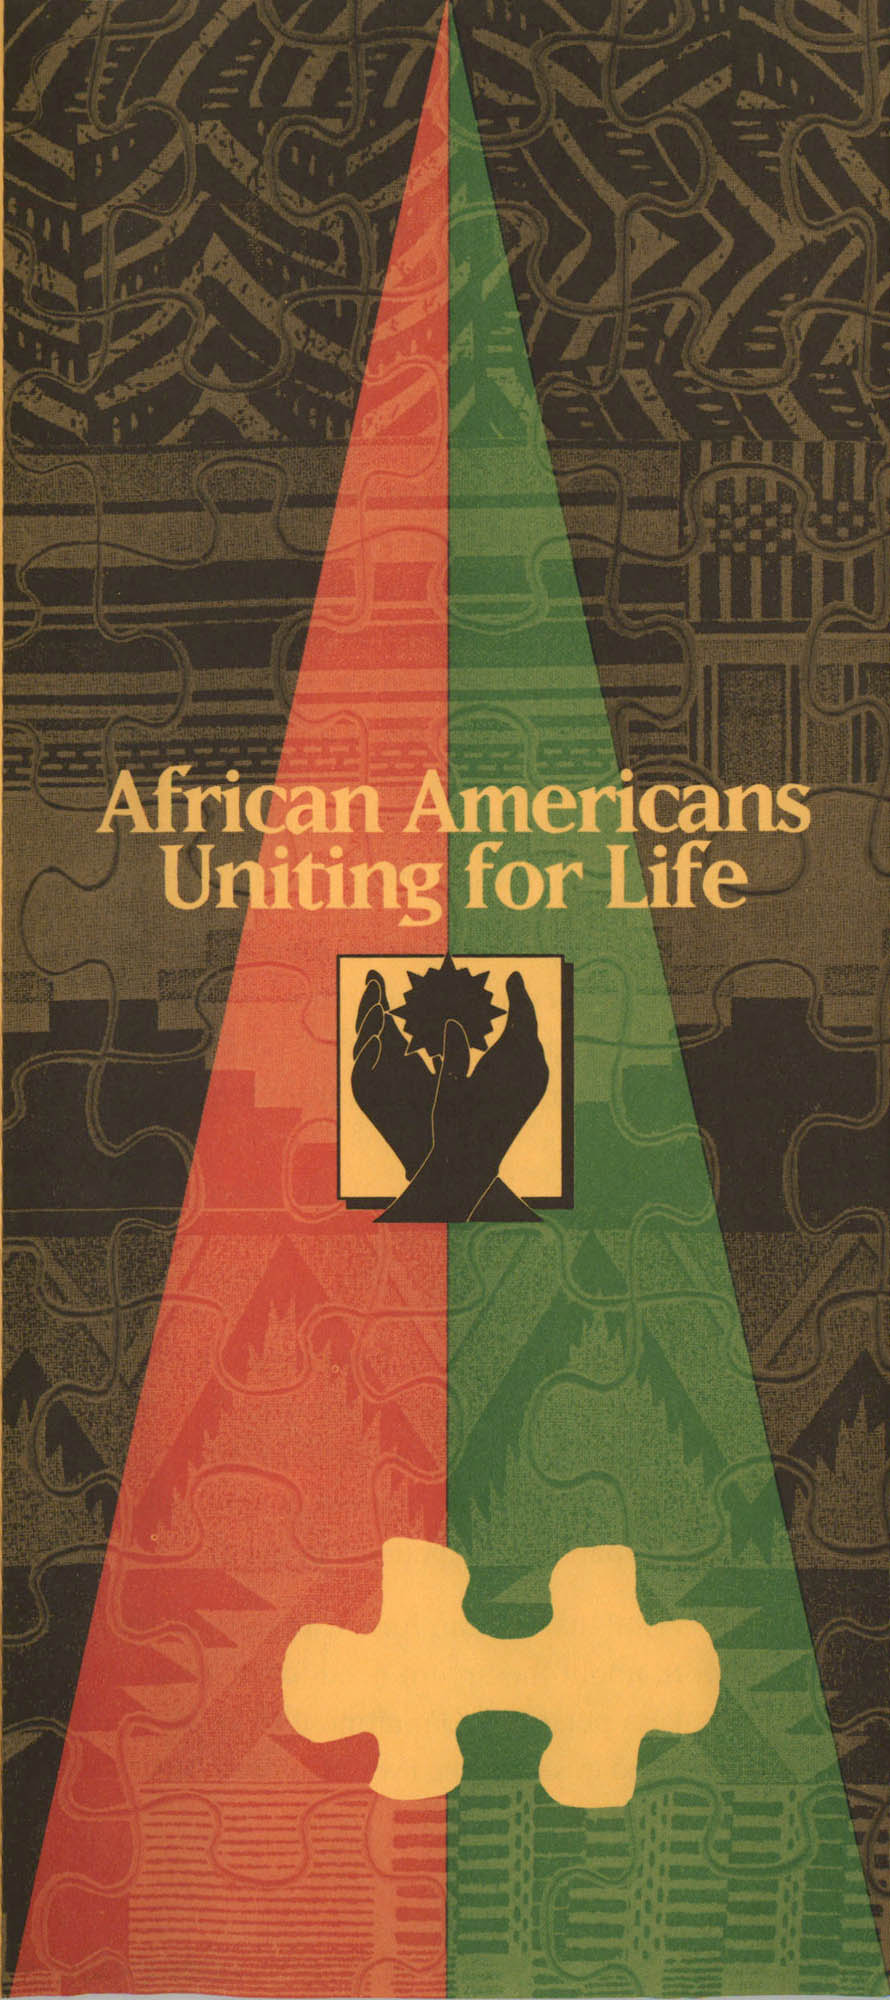 African Americans Uniting for Life Pamphlet